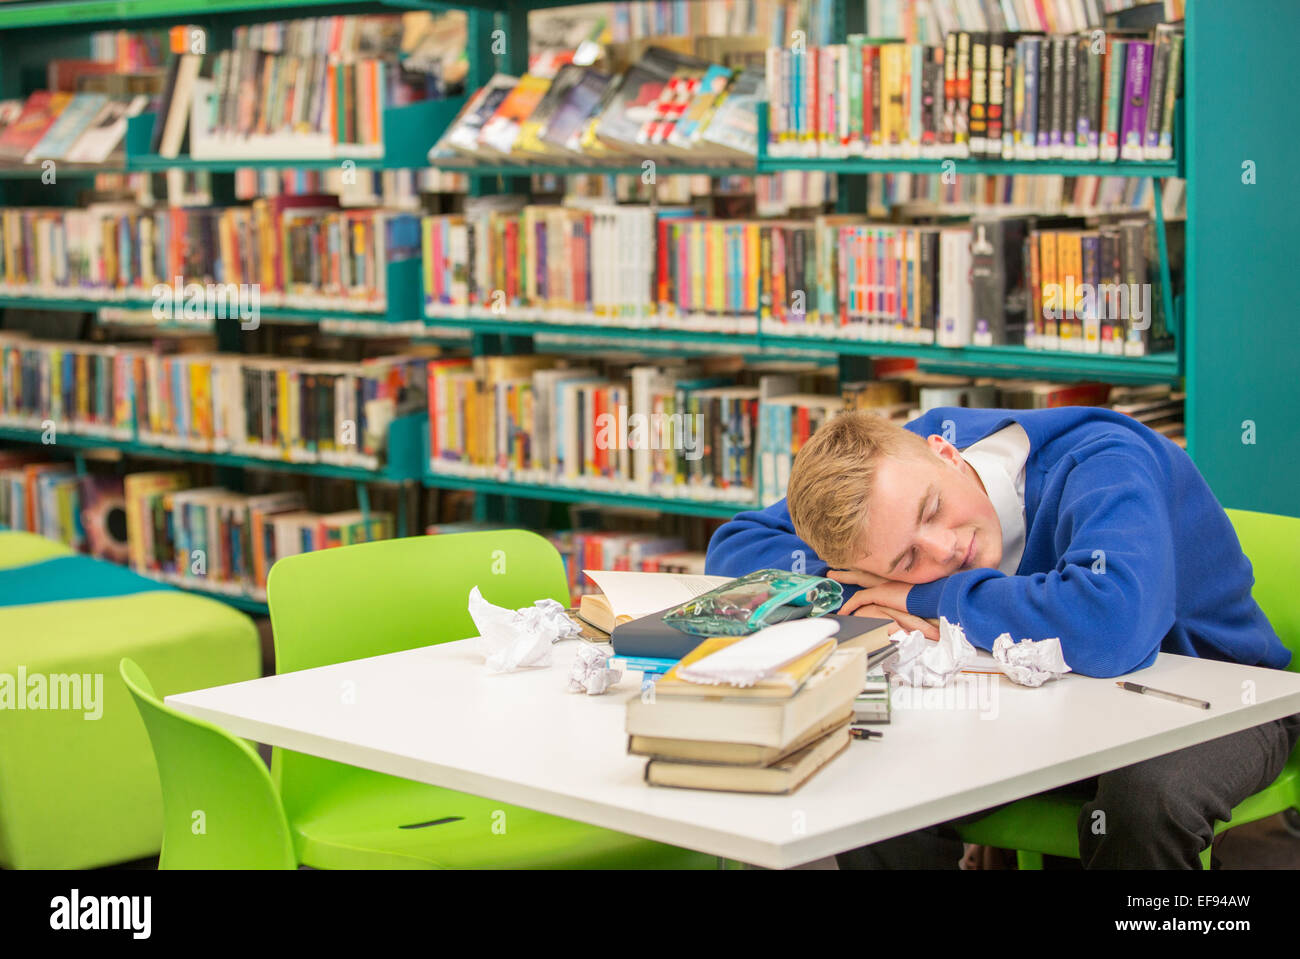 Exhausted student sleeping on table in library - Stock Image